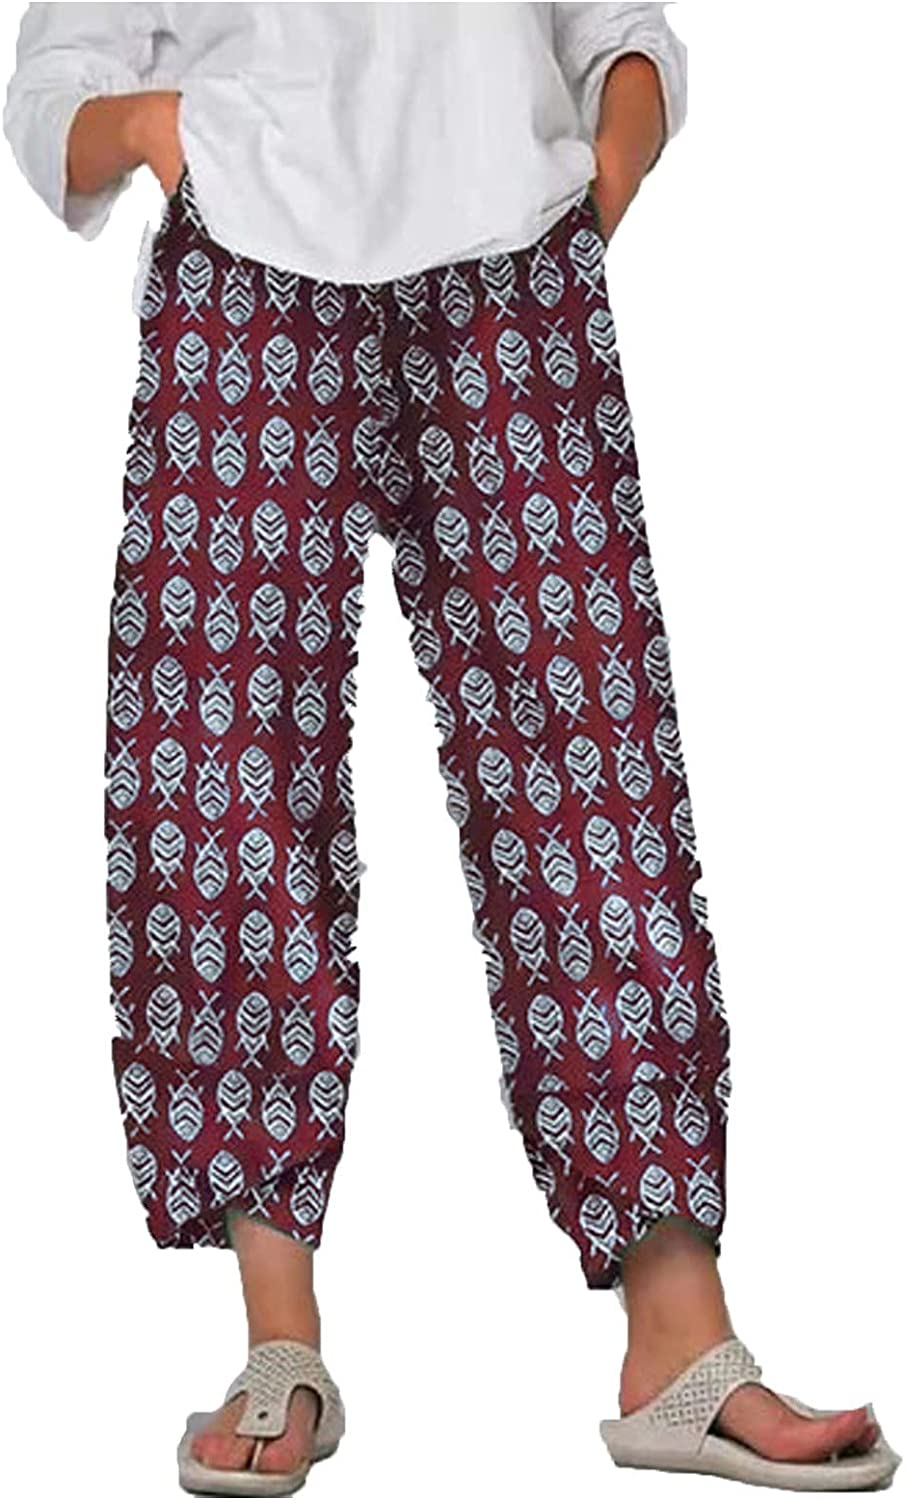 Uninevp Casual Pants for Women Loose fit Lightweight Elastic Waist Summer Flowers Print Cropped Pants Wide Leg Trousers